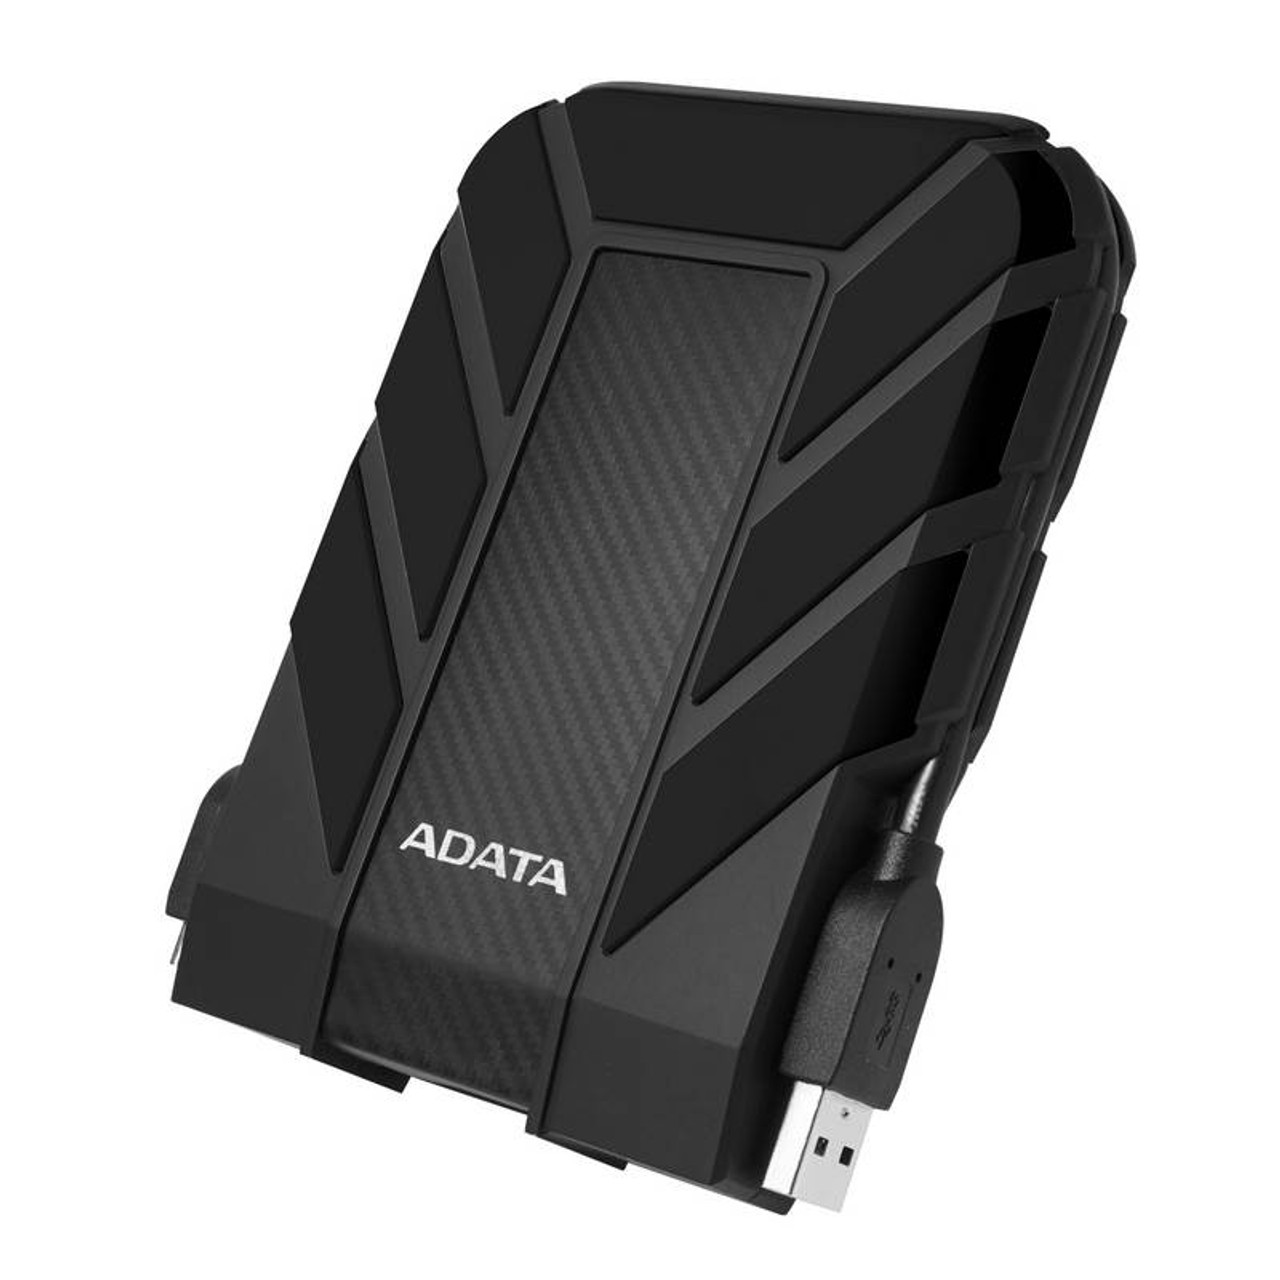 Image for Adata Rugged Pro HD710 2TB USB 3.0 Portable External Hard Drive - Black CX Computer Superstore